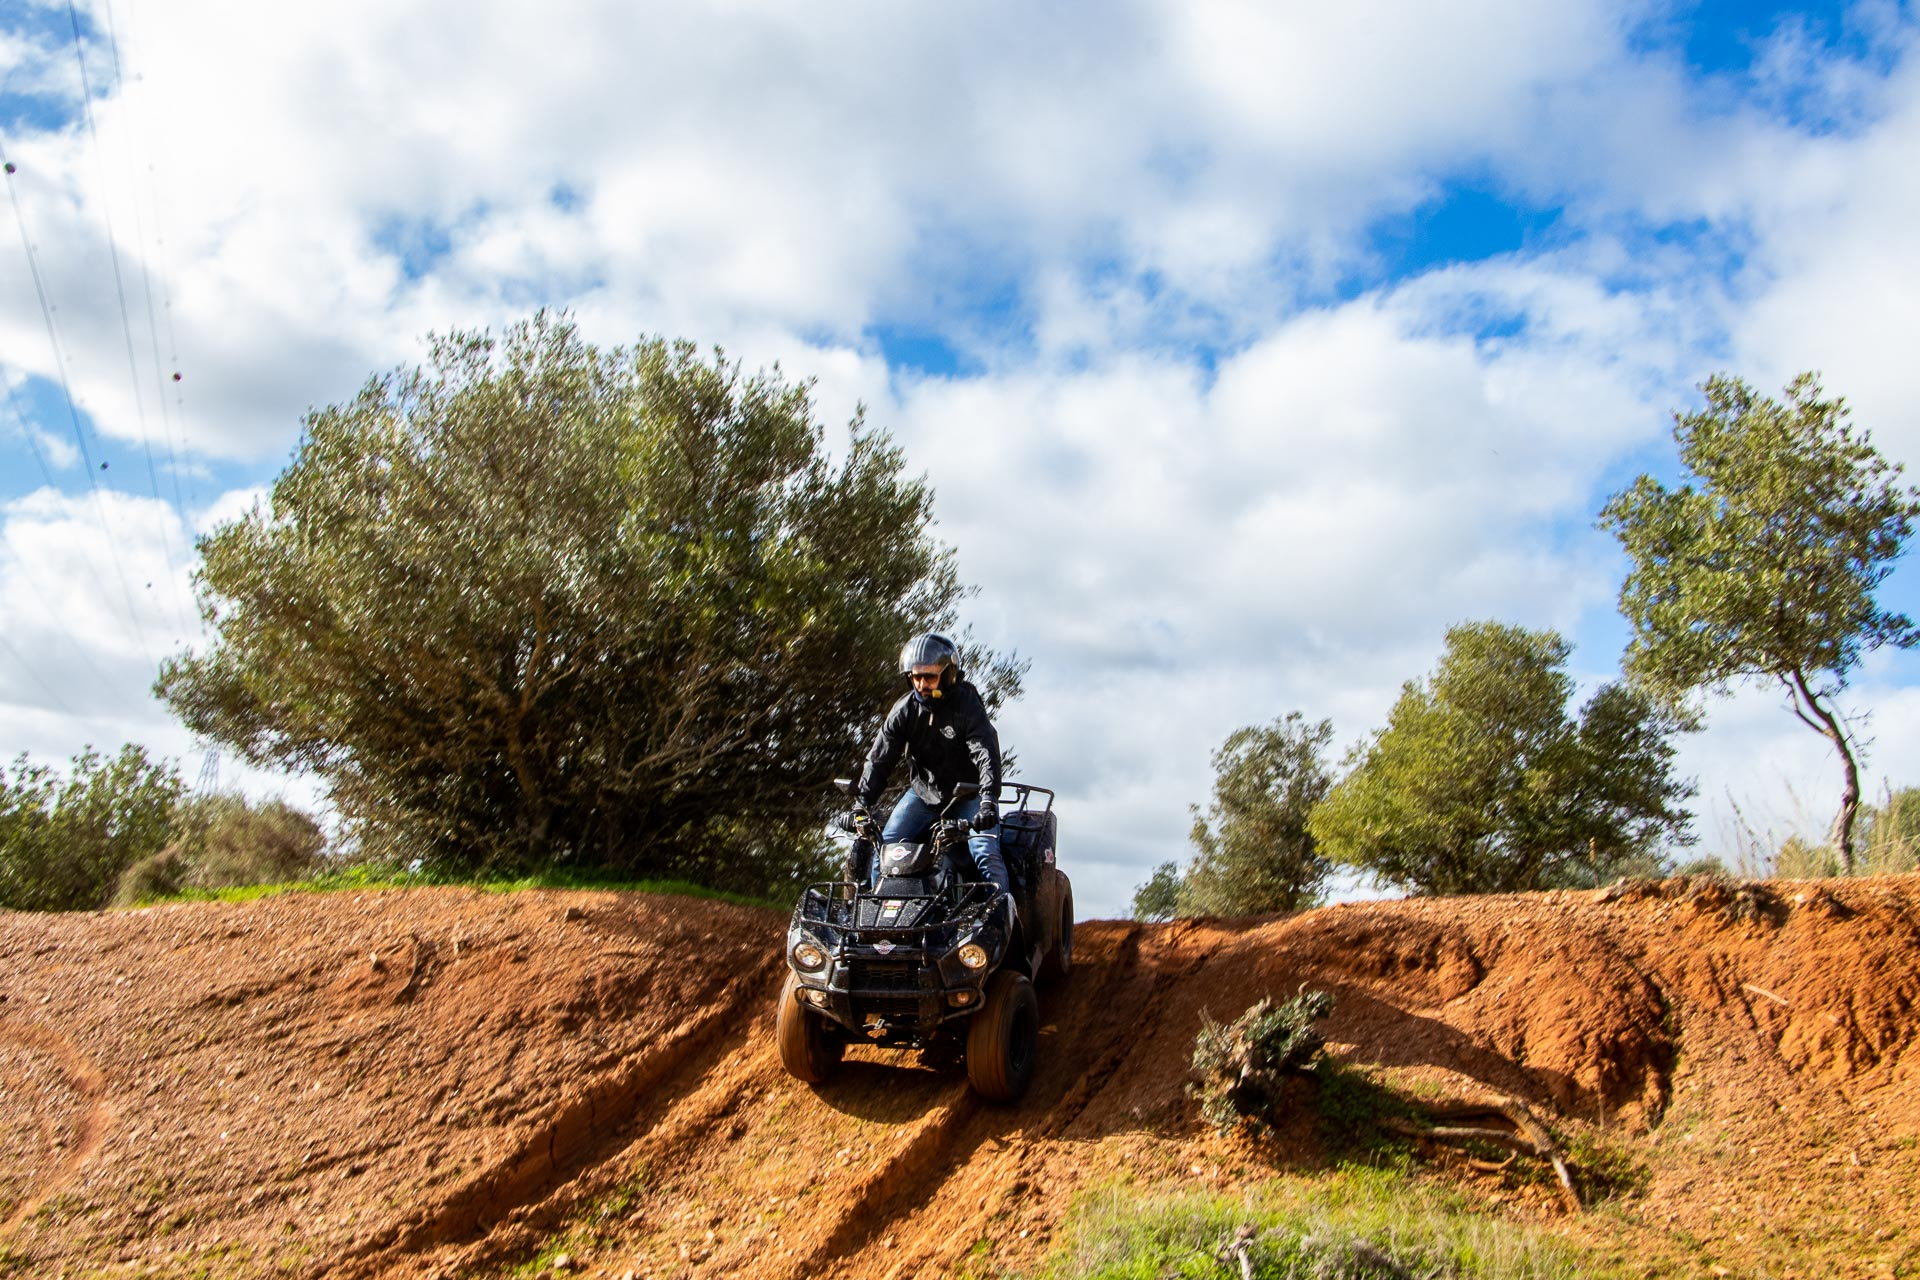 Excursiones en Quads en el Interior de Algarve